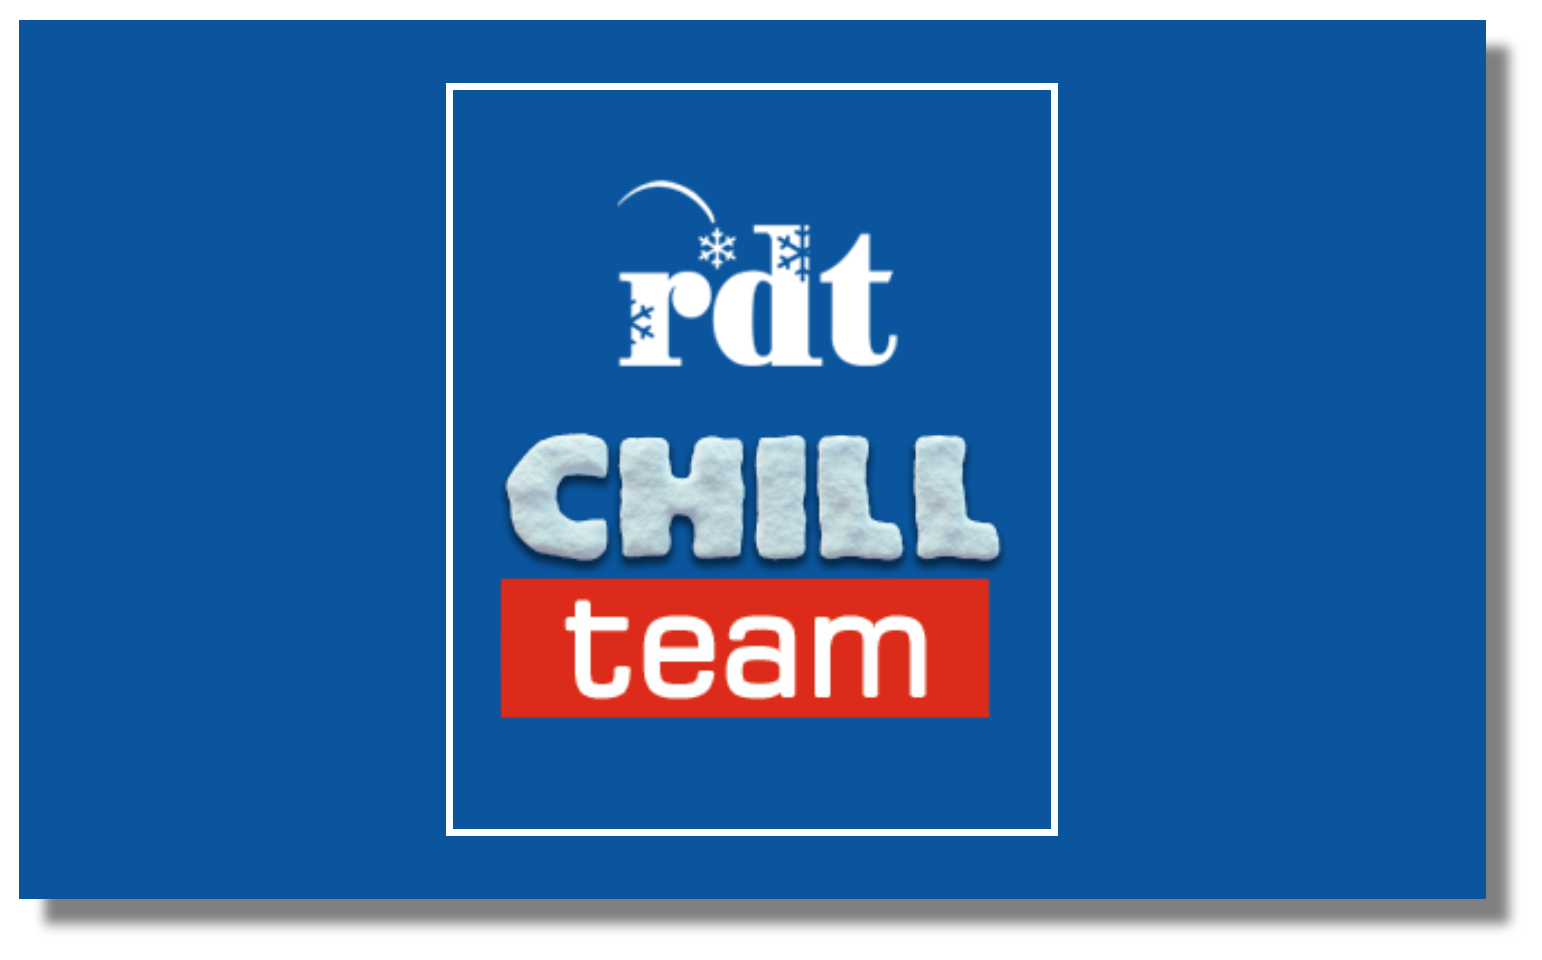 RDT Chill Team Refrigeration Experts